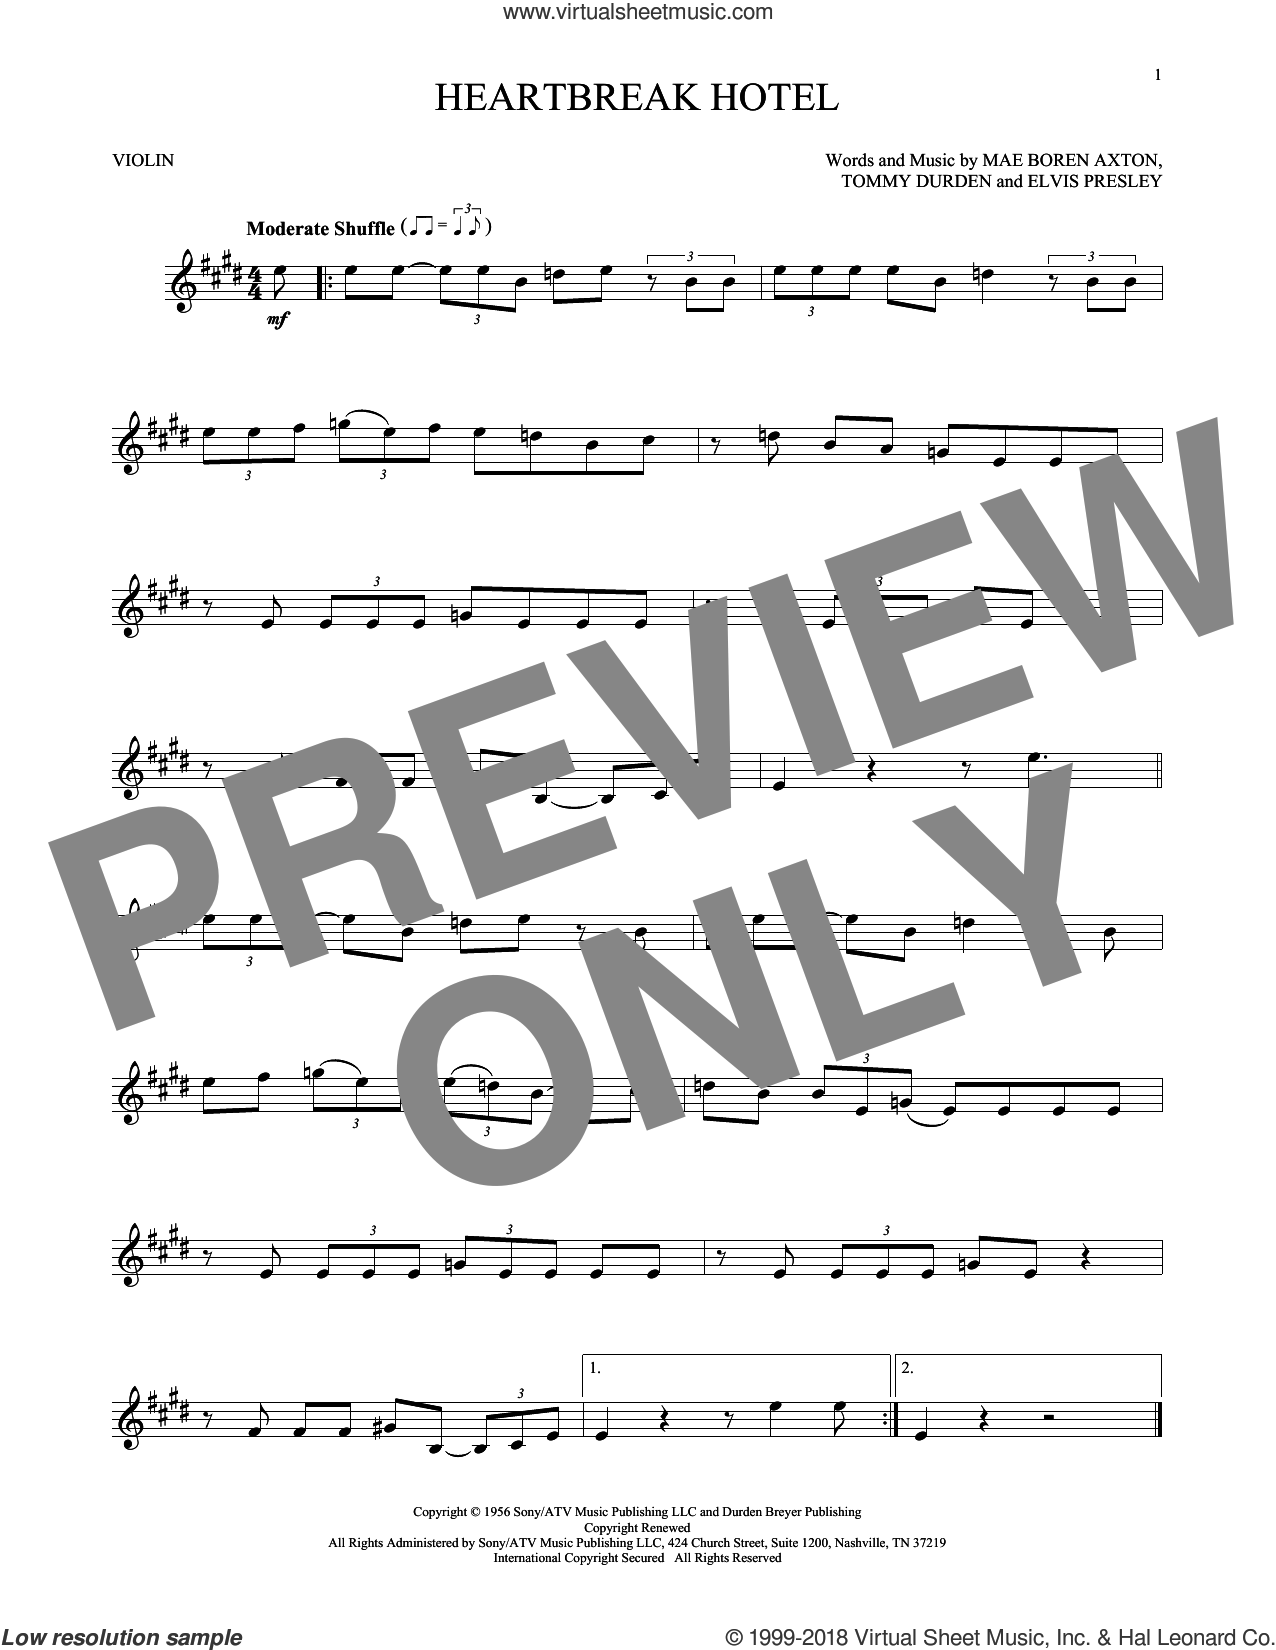 Heartbreak Hotel sheet music for violin solo by Elvis Presley, Mae Boren Axton and Tommy Durden, intermediate skill level